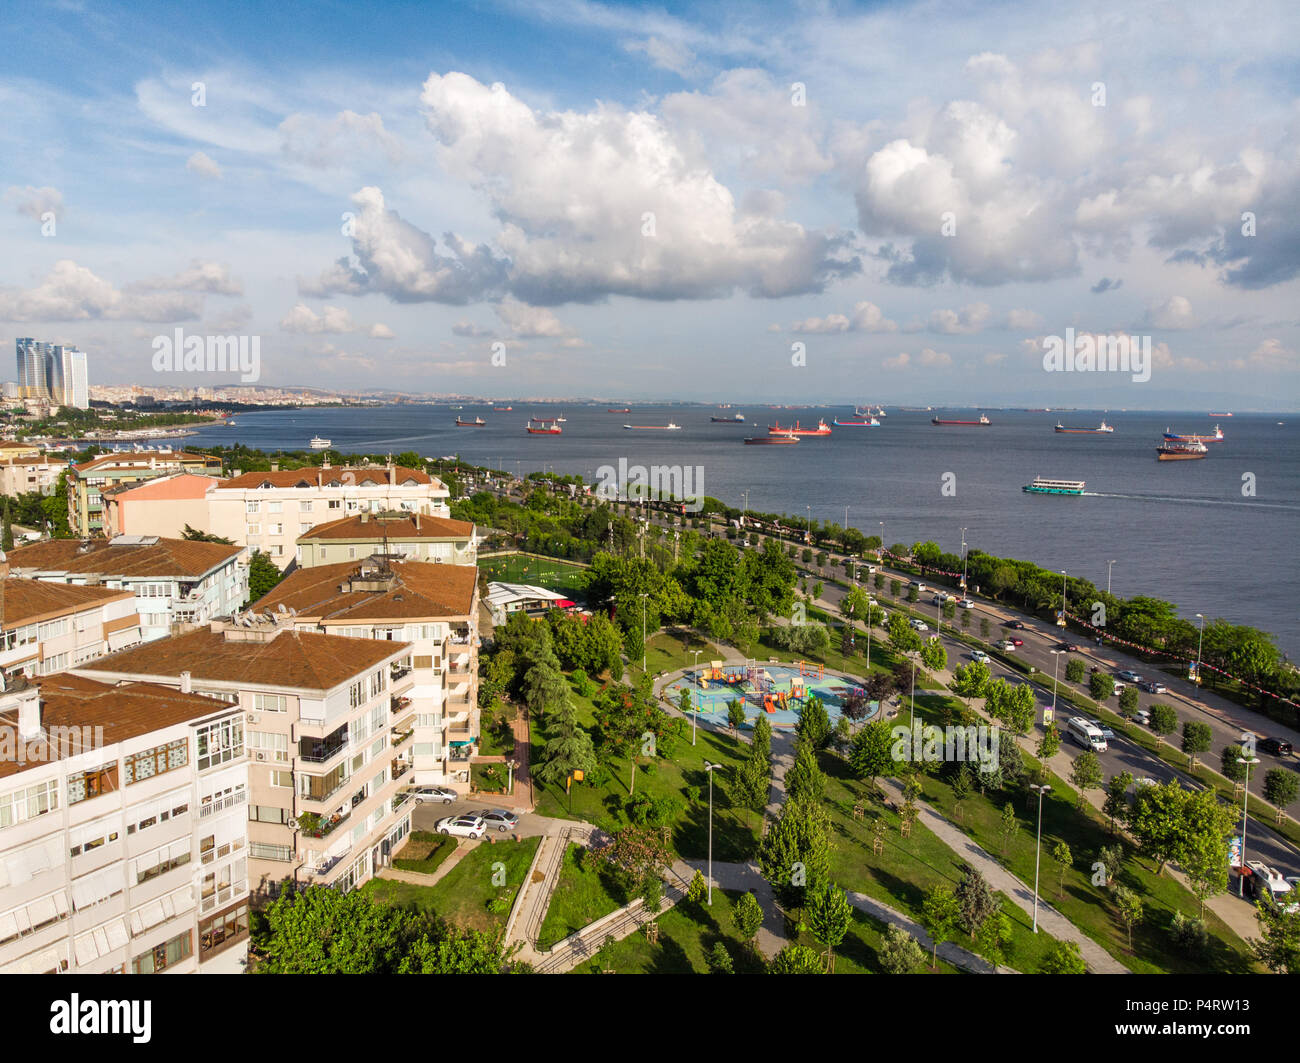 Aerial Drone View Of Kartal Istanbul City Seaside City View Stock